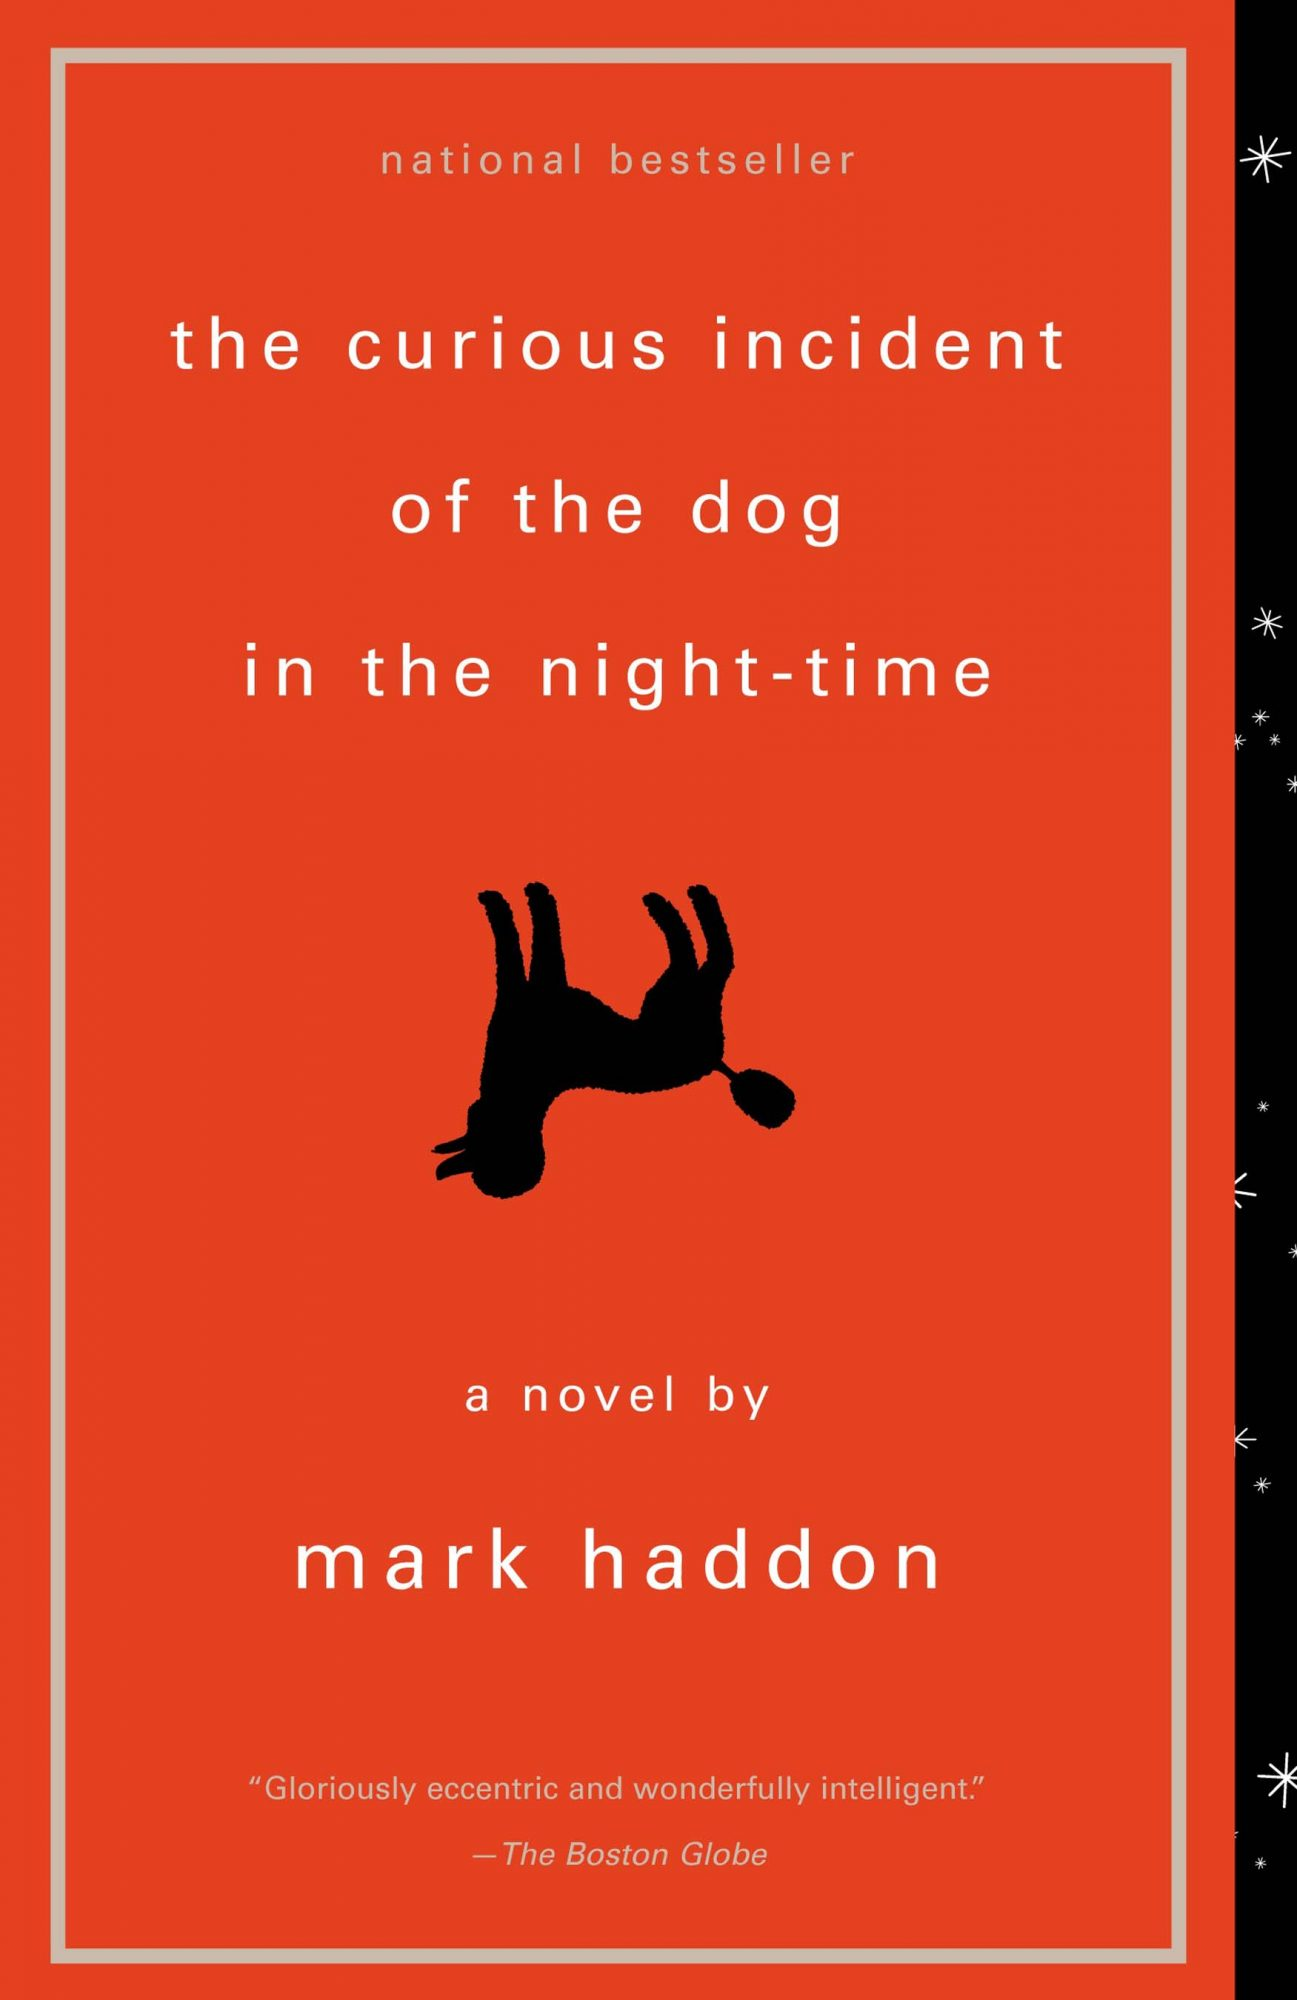 curious-incident-of-the-dog